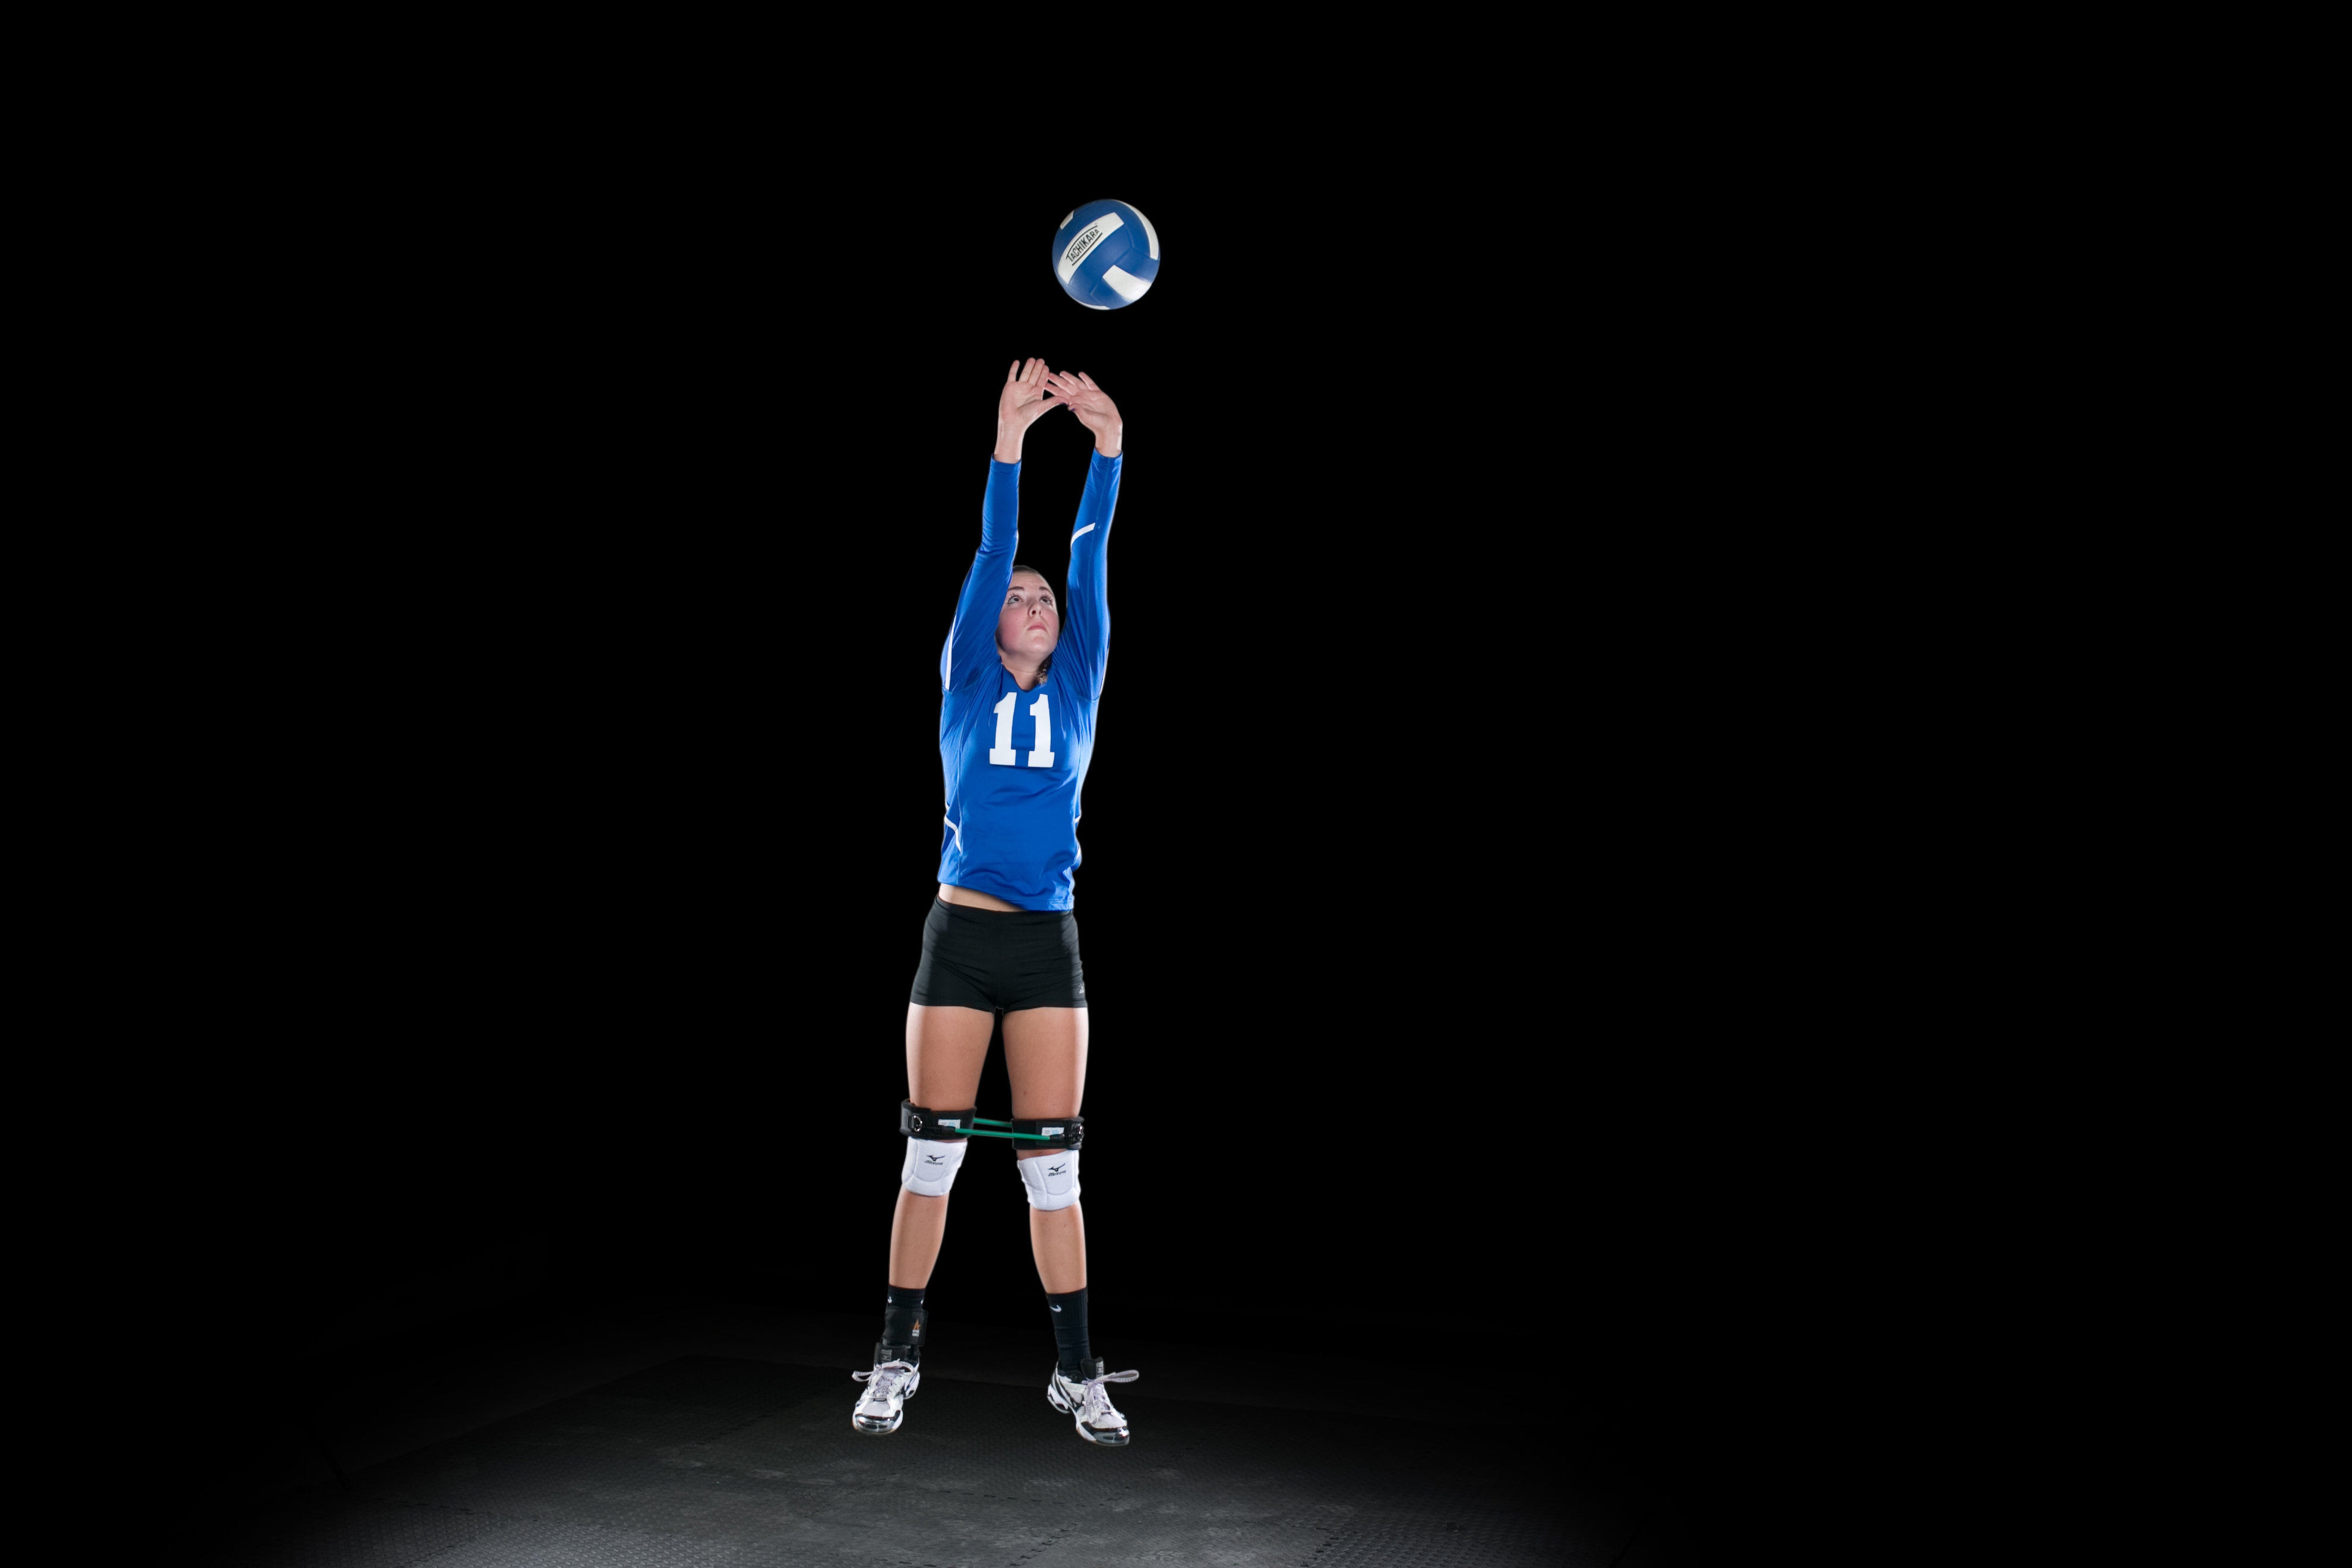 Volleyball Player hitting Volleyball